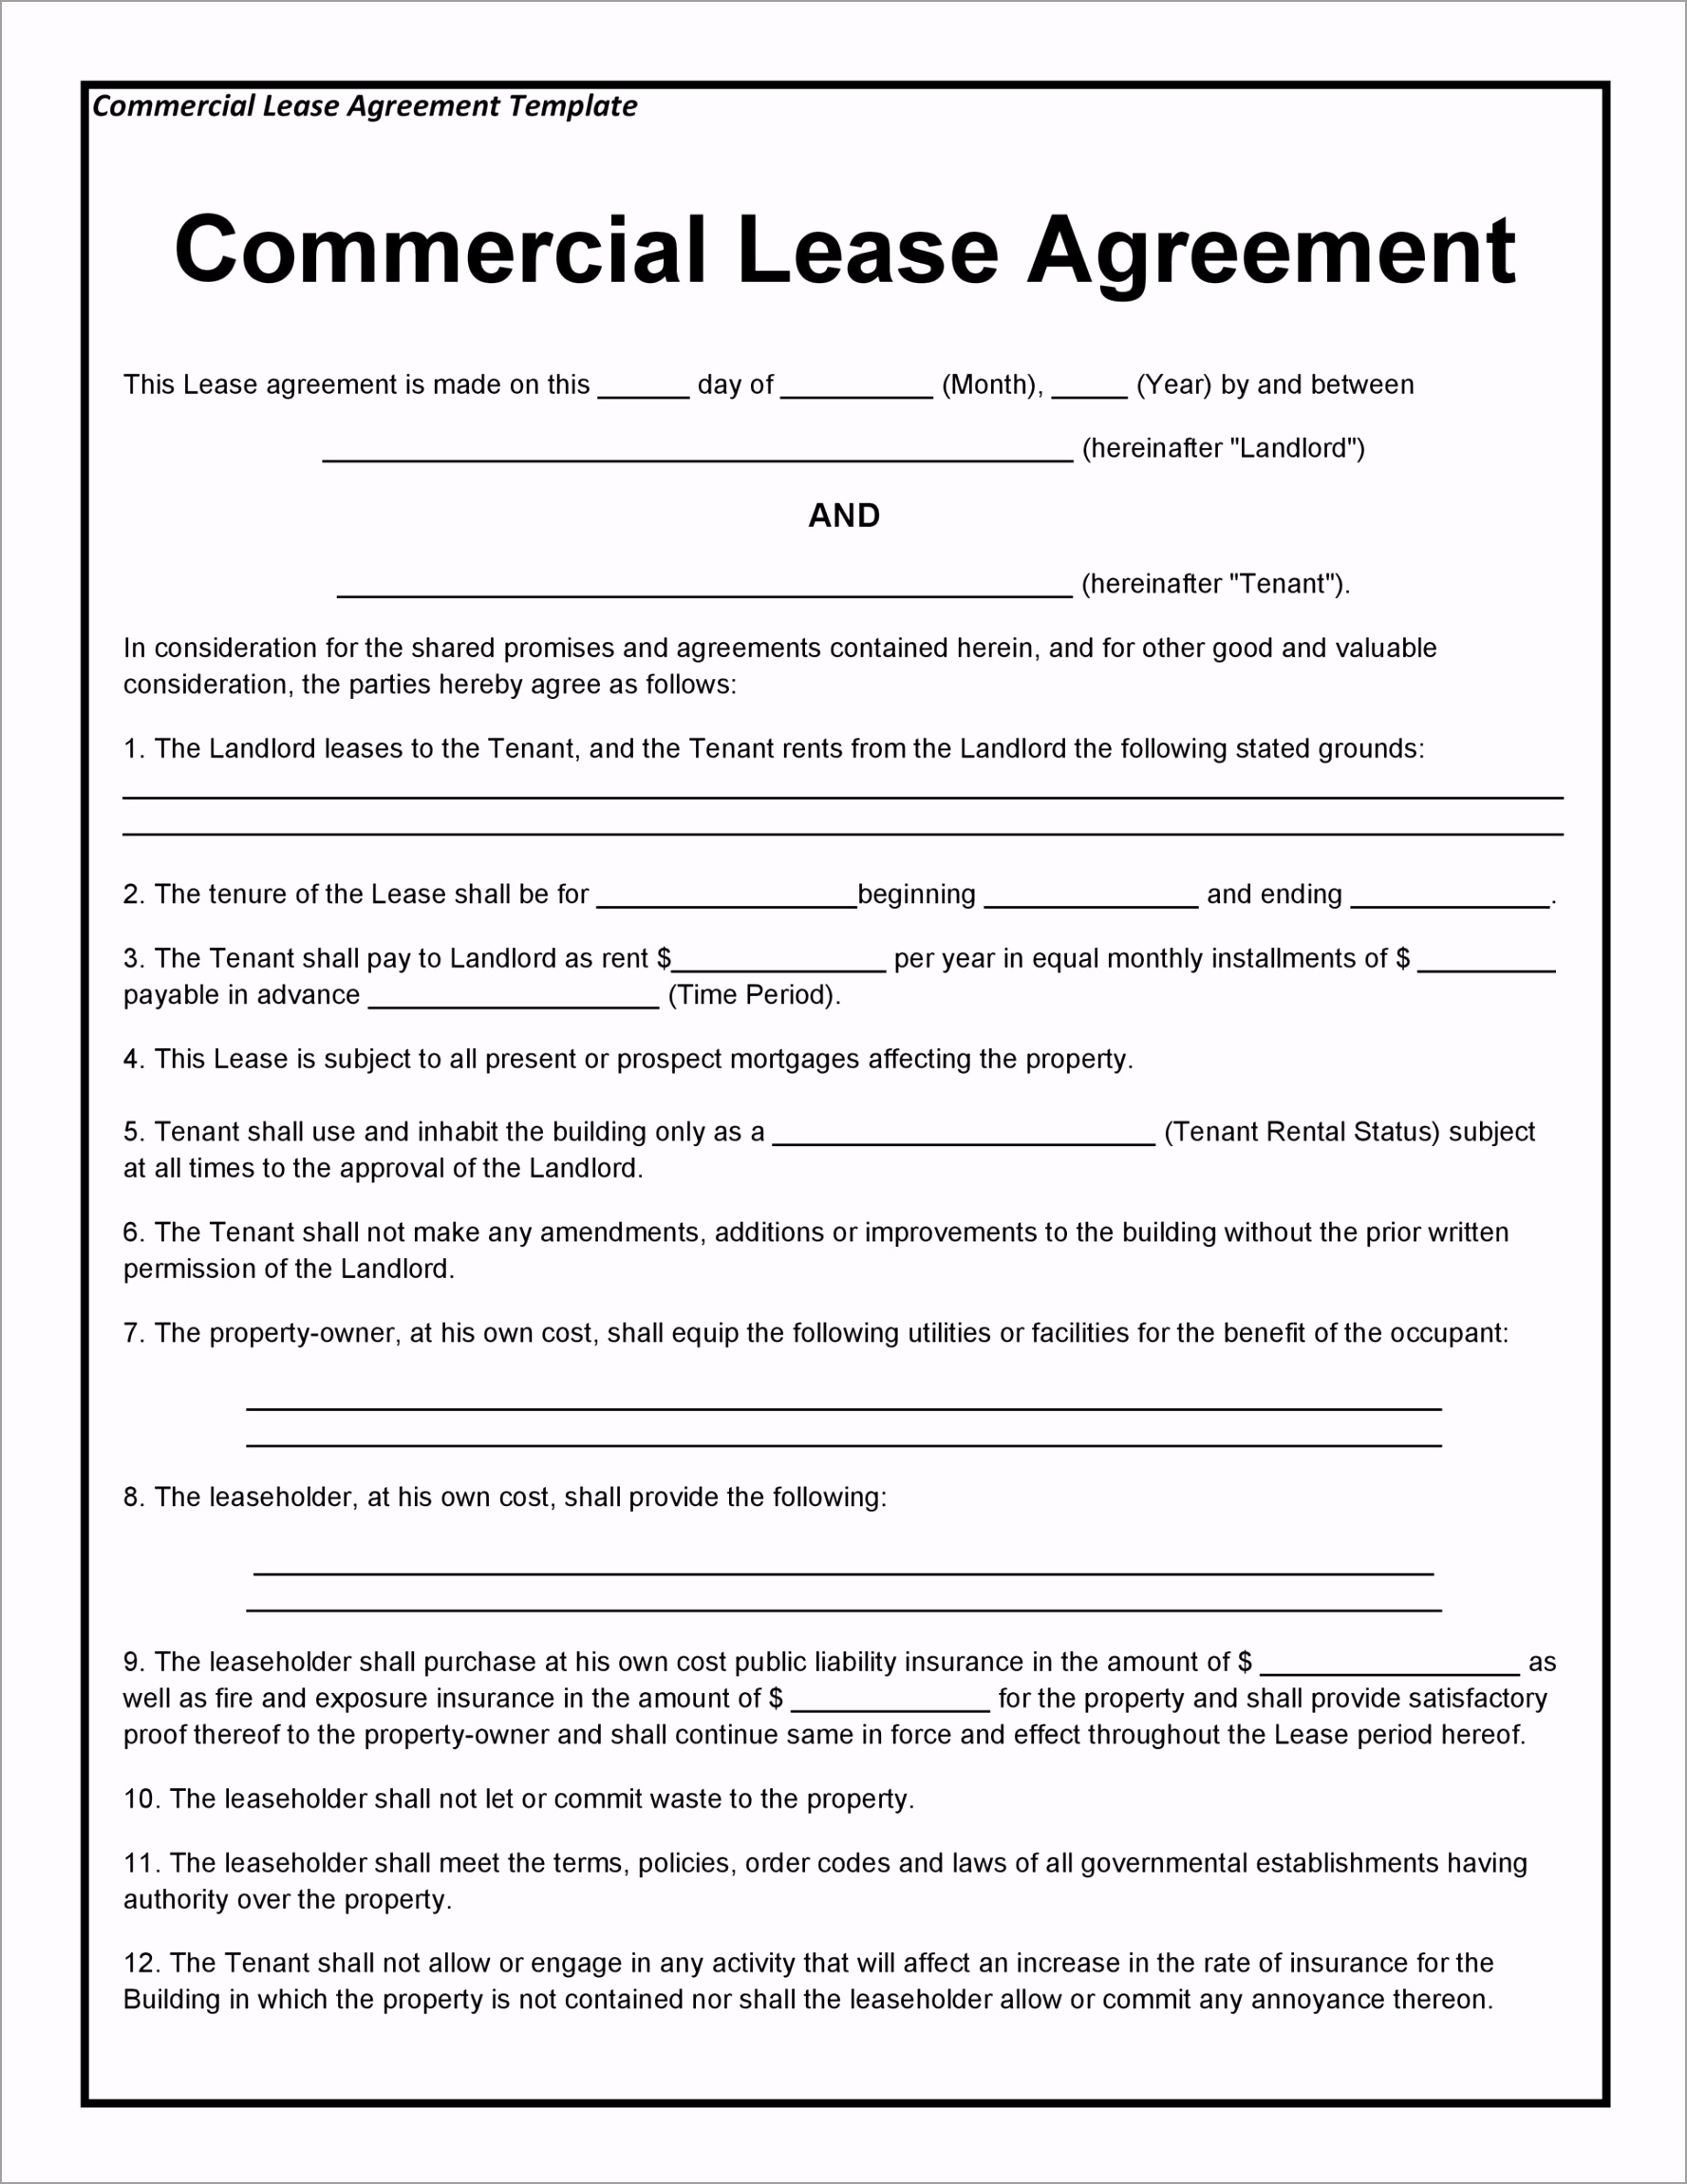 mercial Lease Agreement Template 04 oiyww